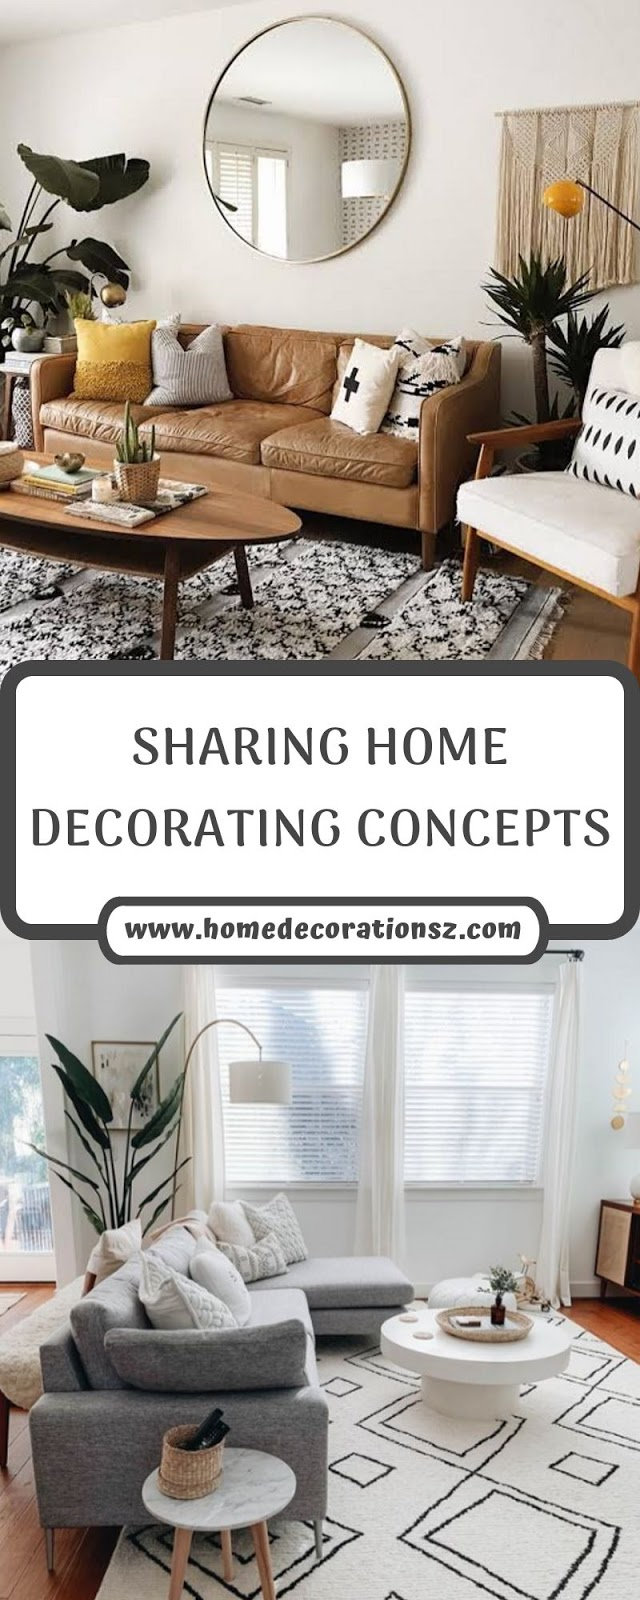 SHARING HOME DECORATING CONCEPTS